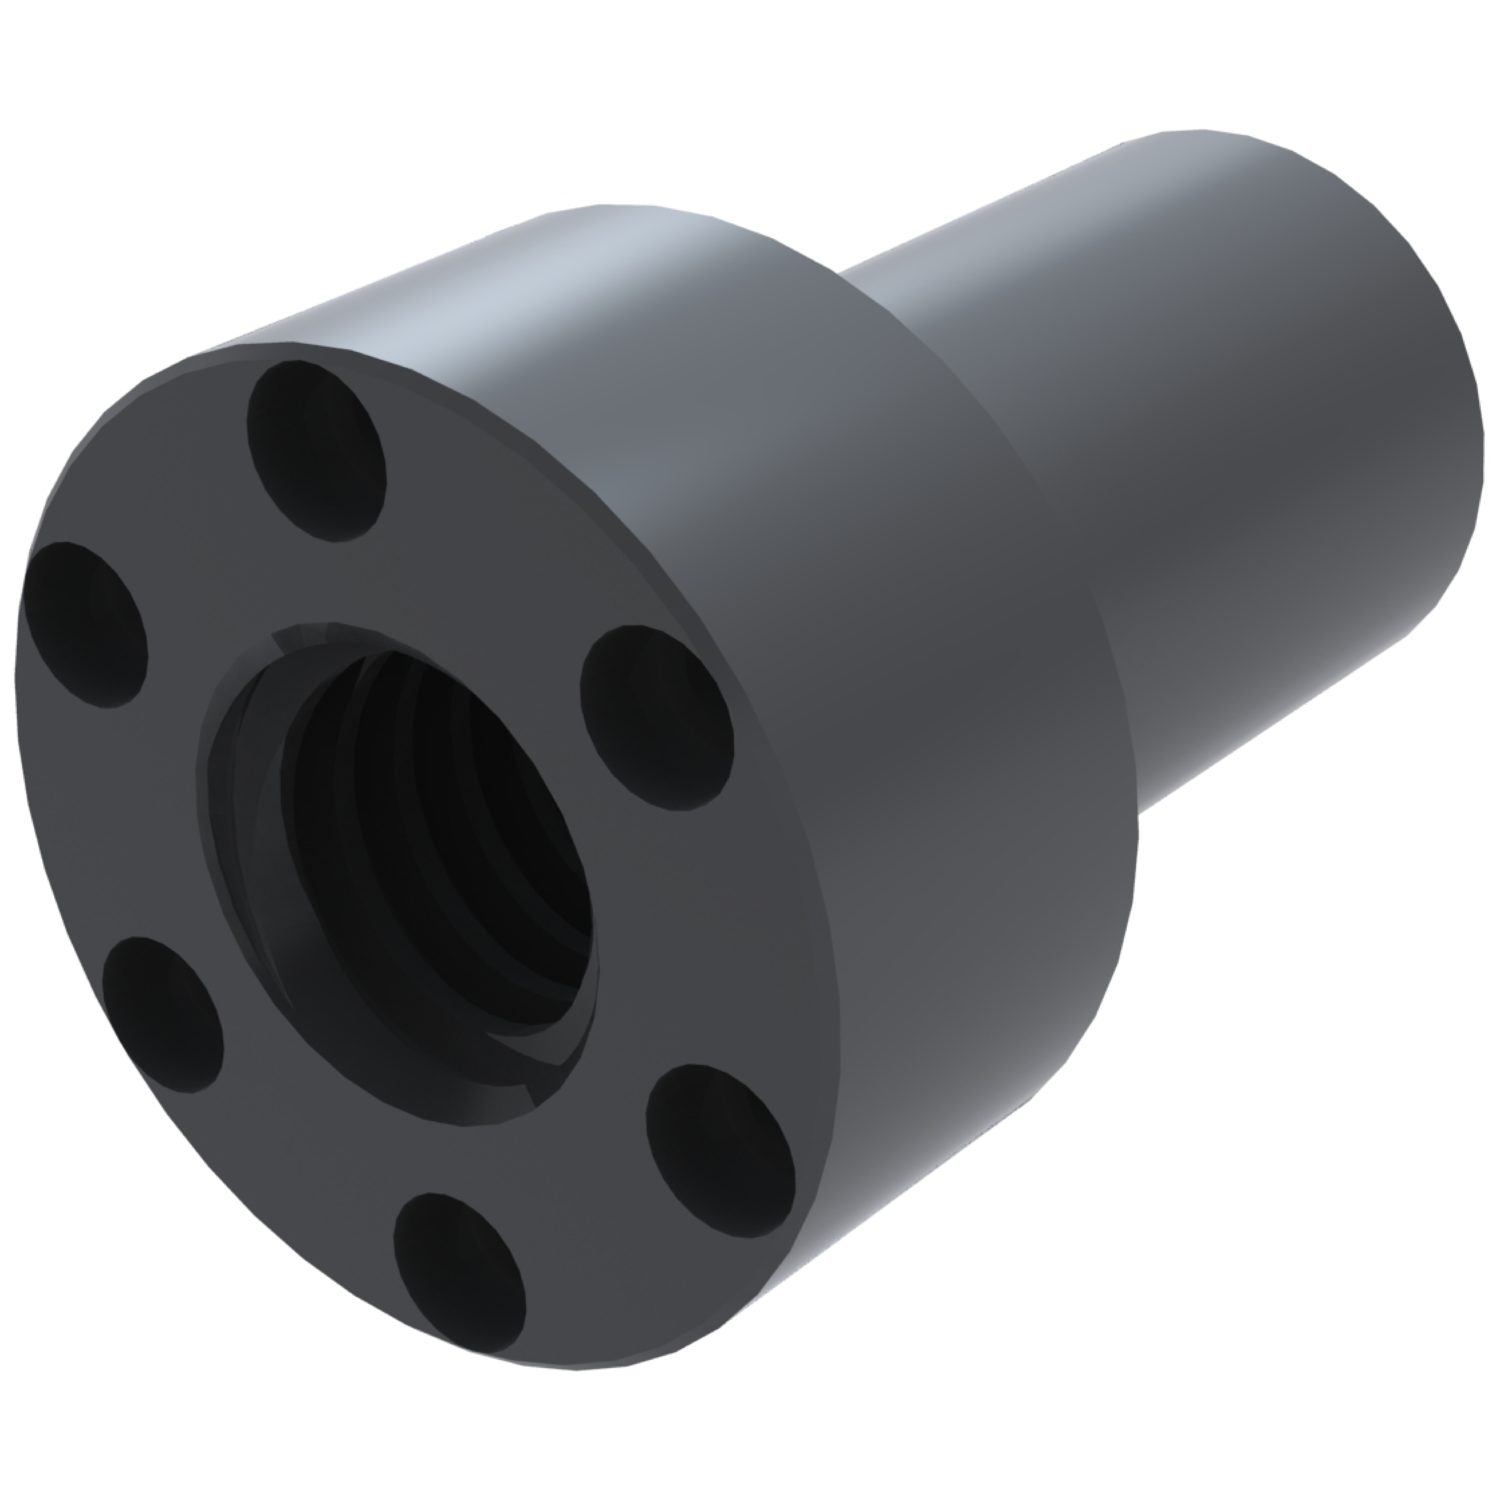 Product L1342, Flanged Self-Lubricating Plastic Nut for lead screws /